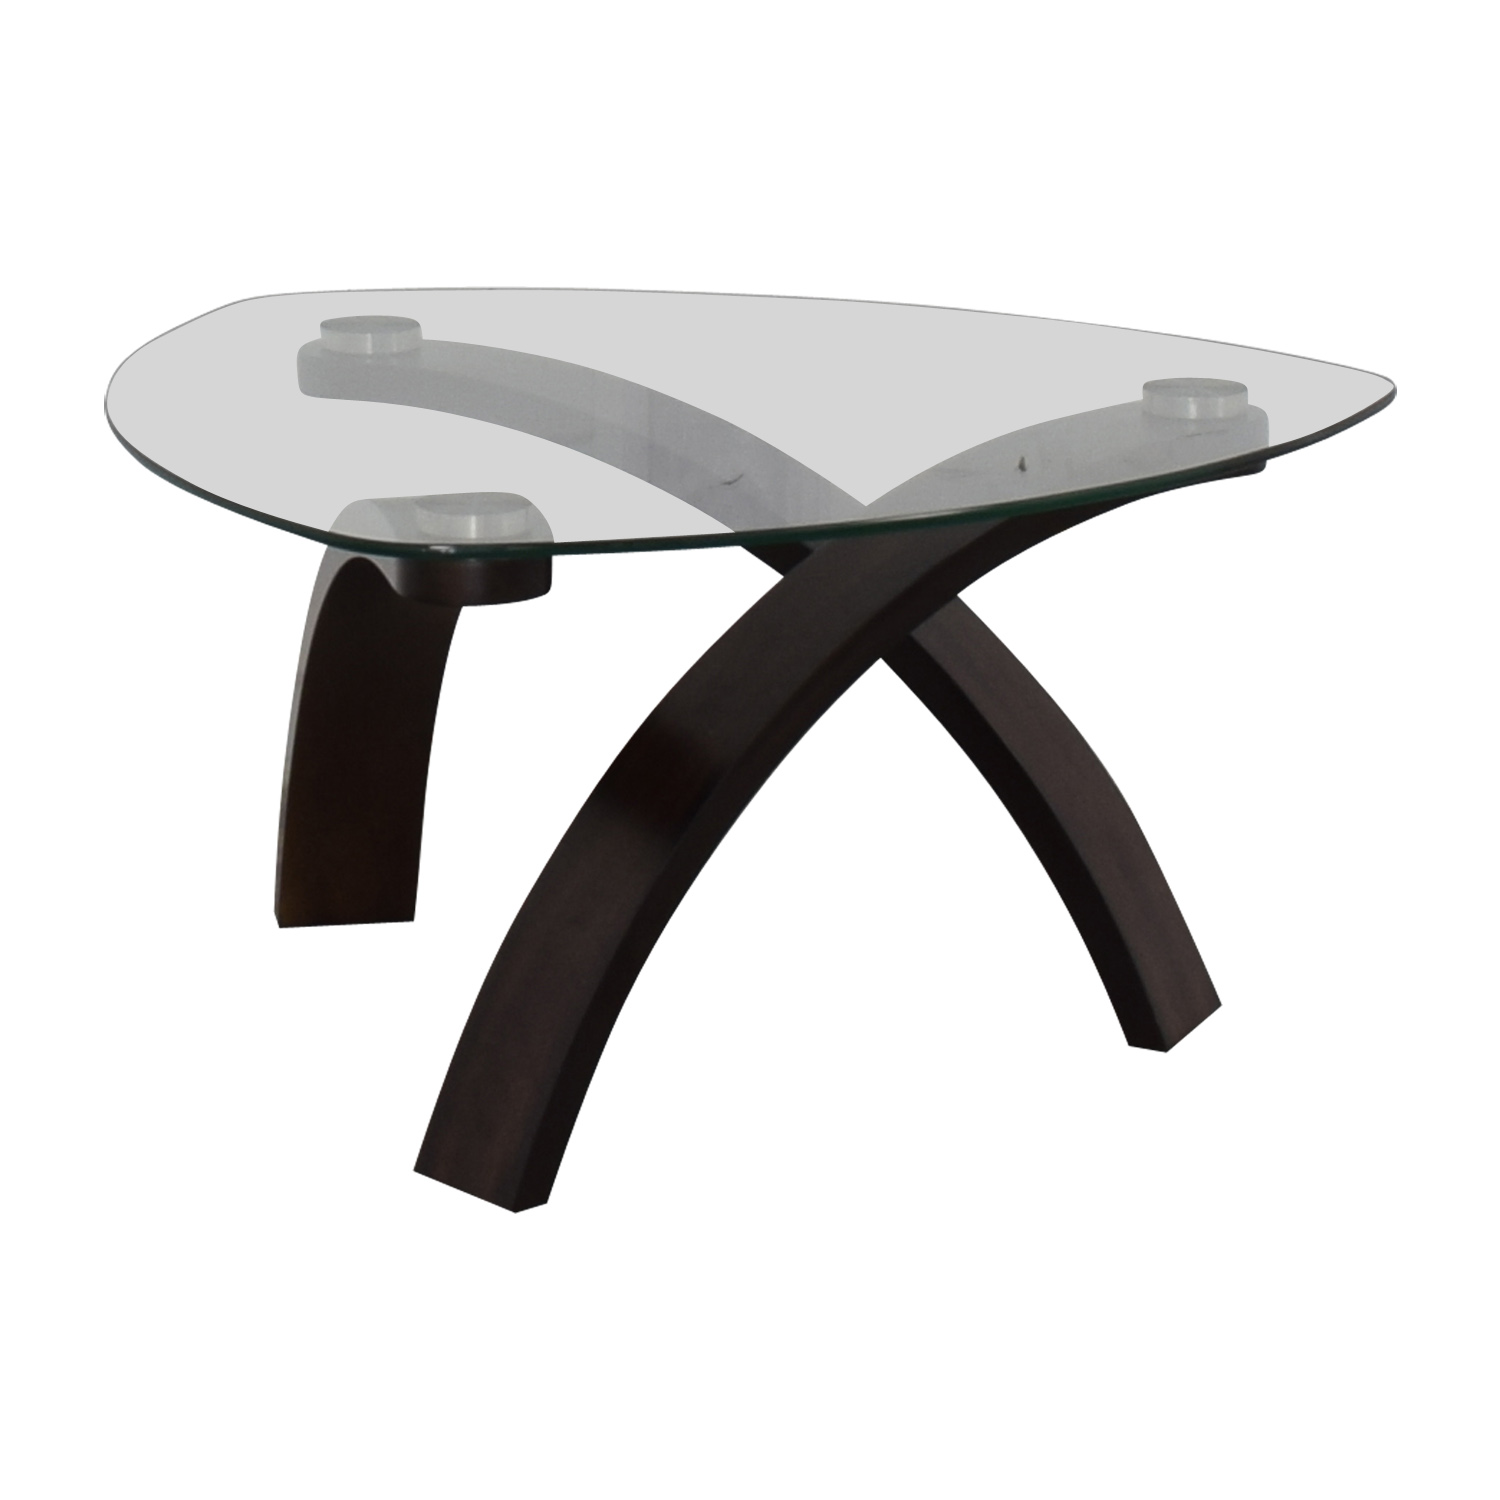 buy Raymour & Flanigan Raymour & Flanigan Allure Glass Coffee Table online